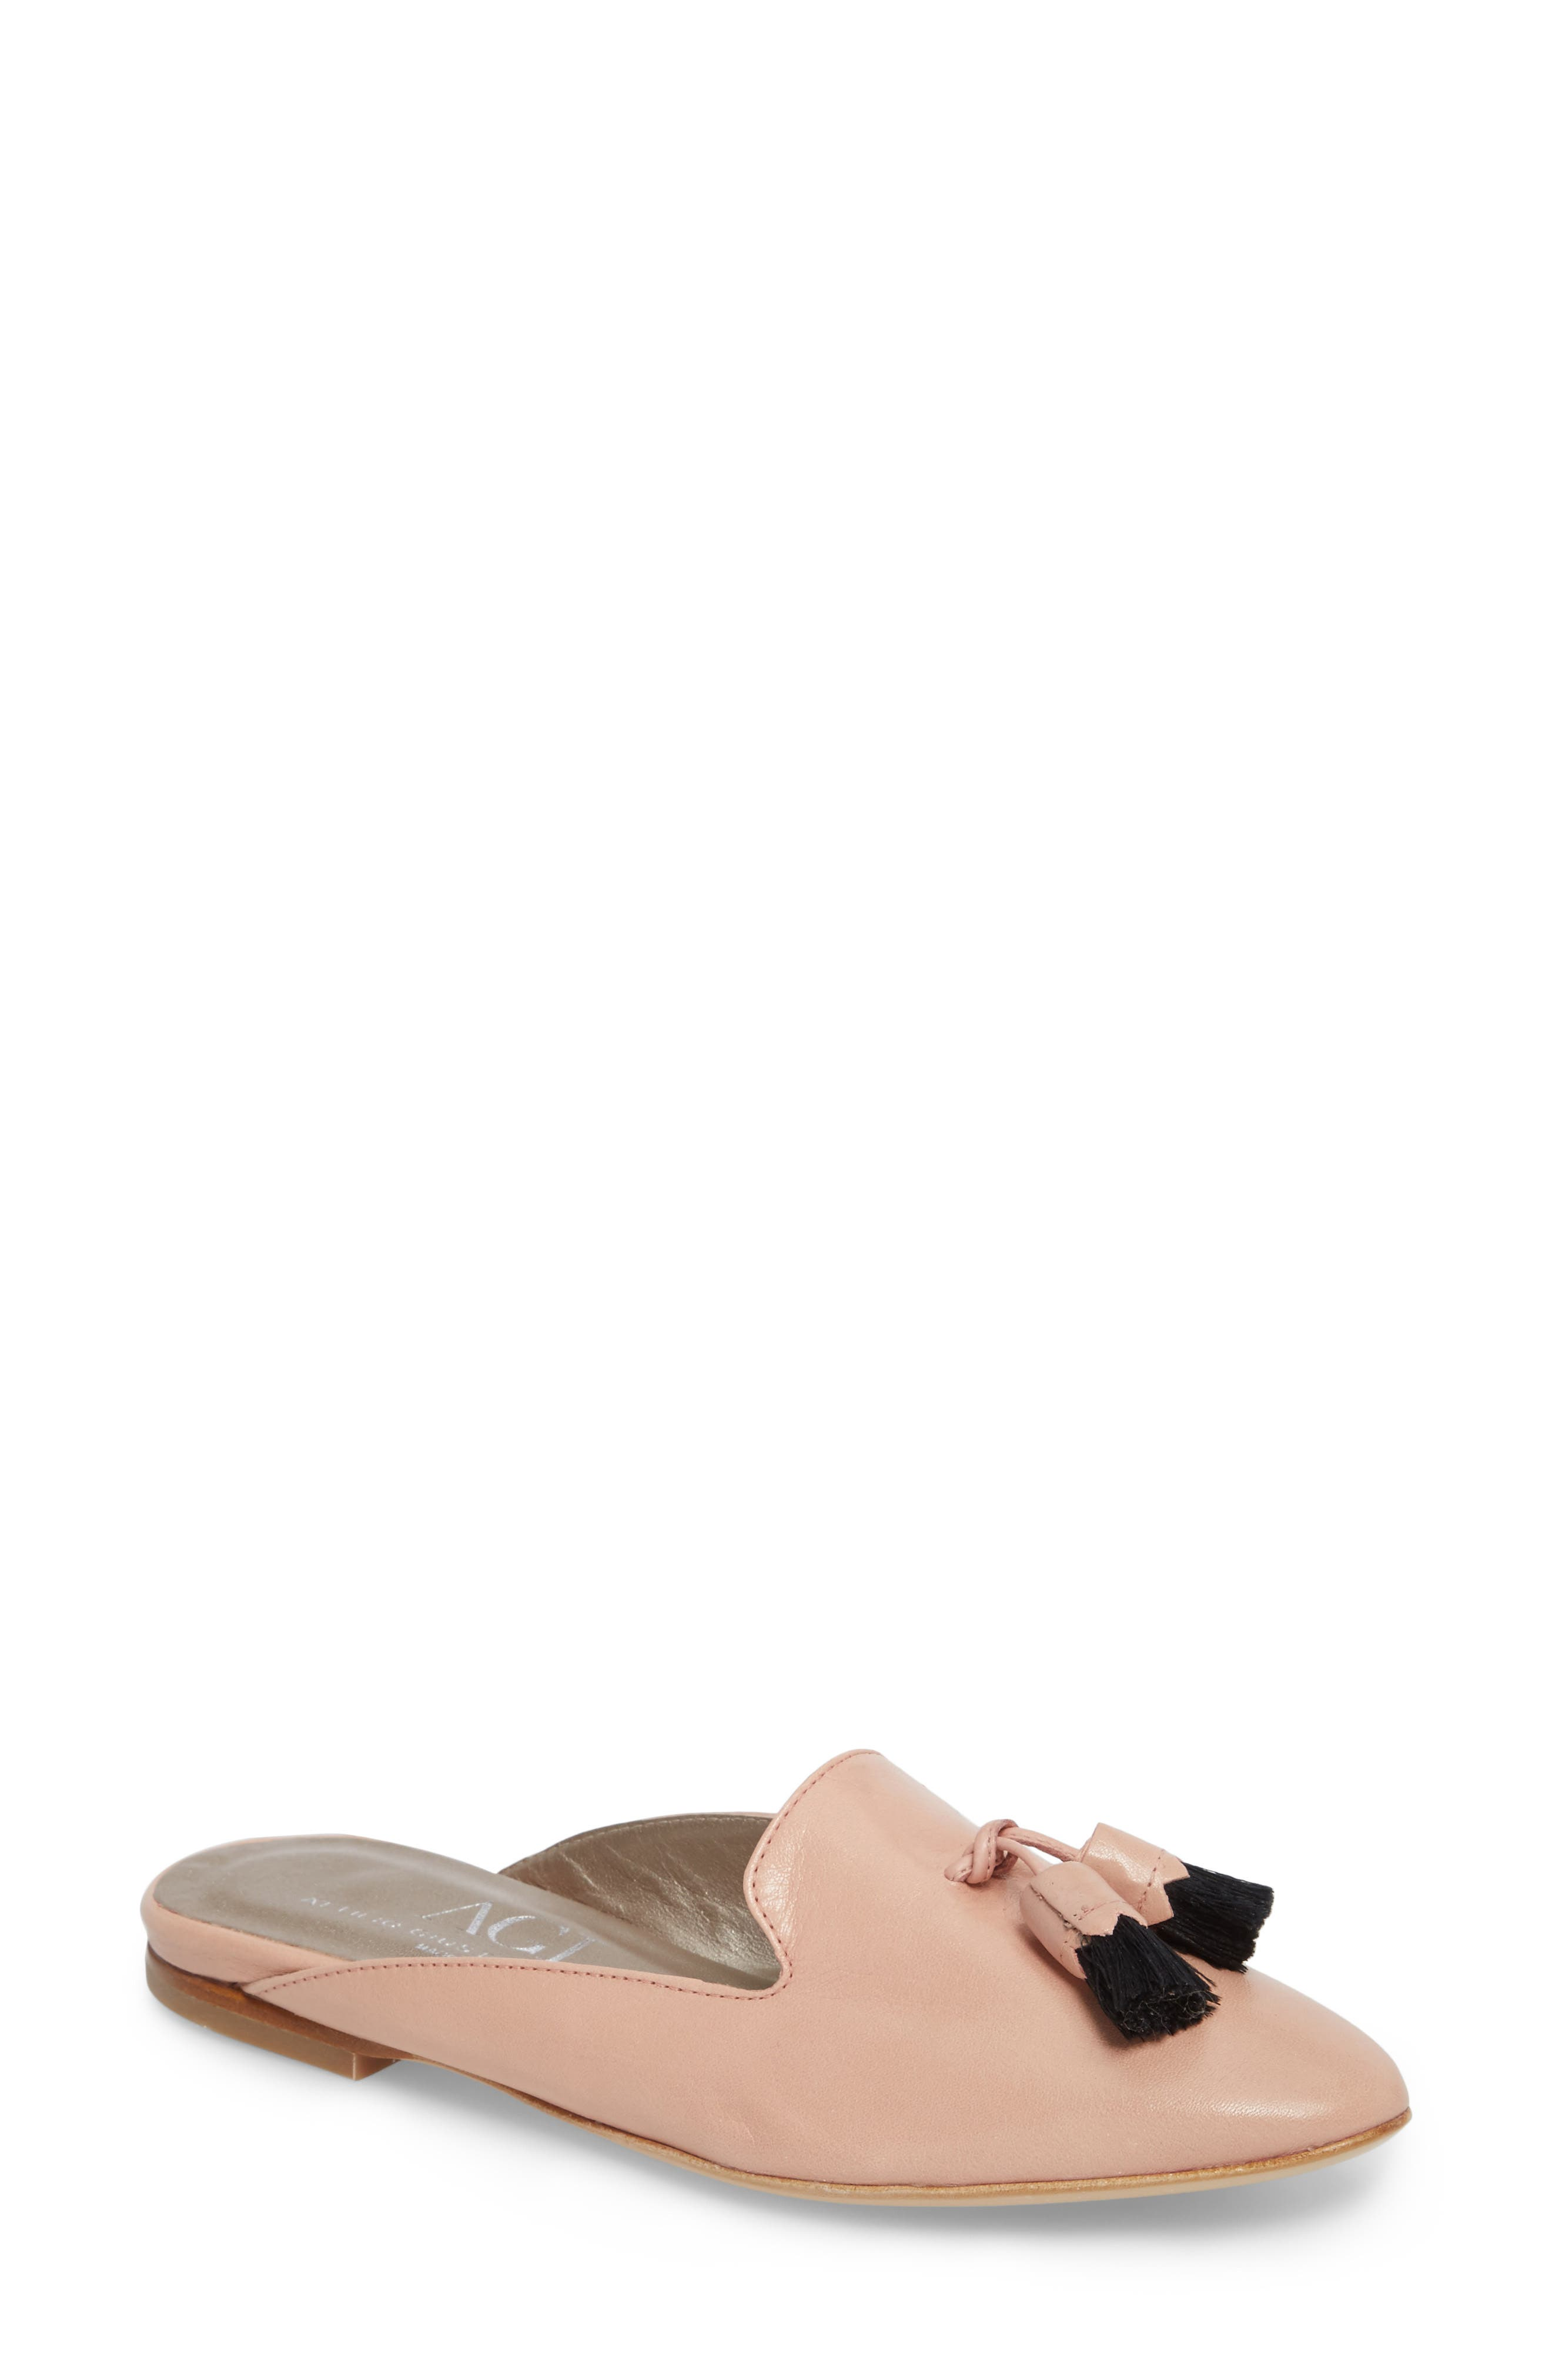 Tassel Loafer Mule,                             Main thumbnail 1, color,                             Nude Pink Leather